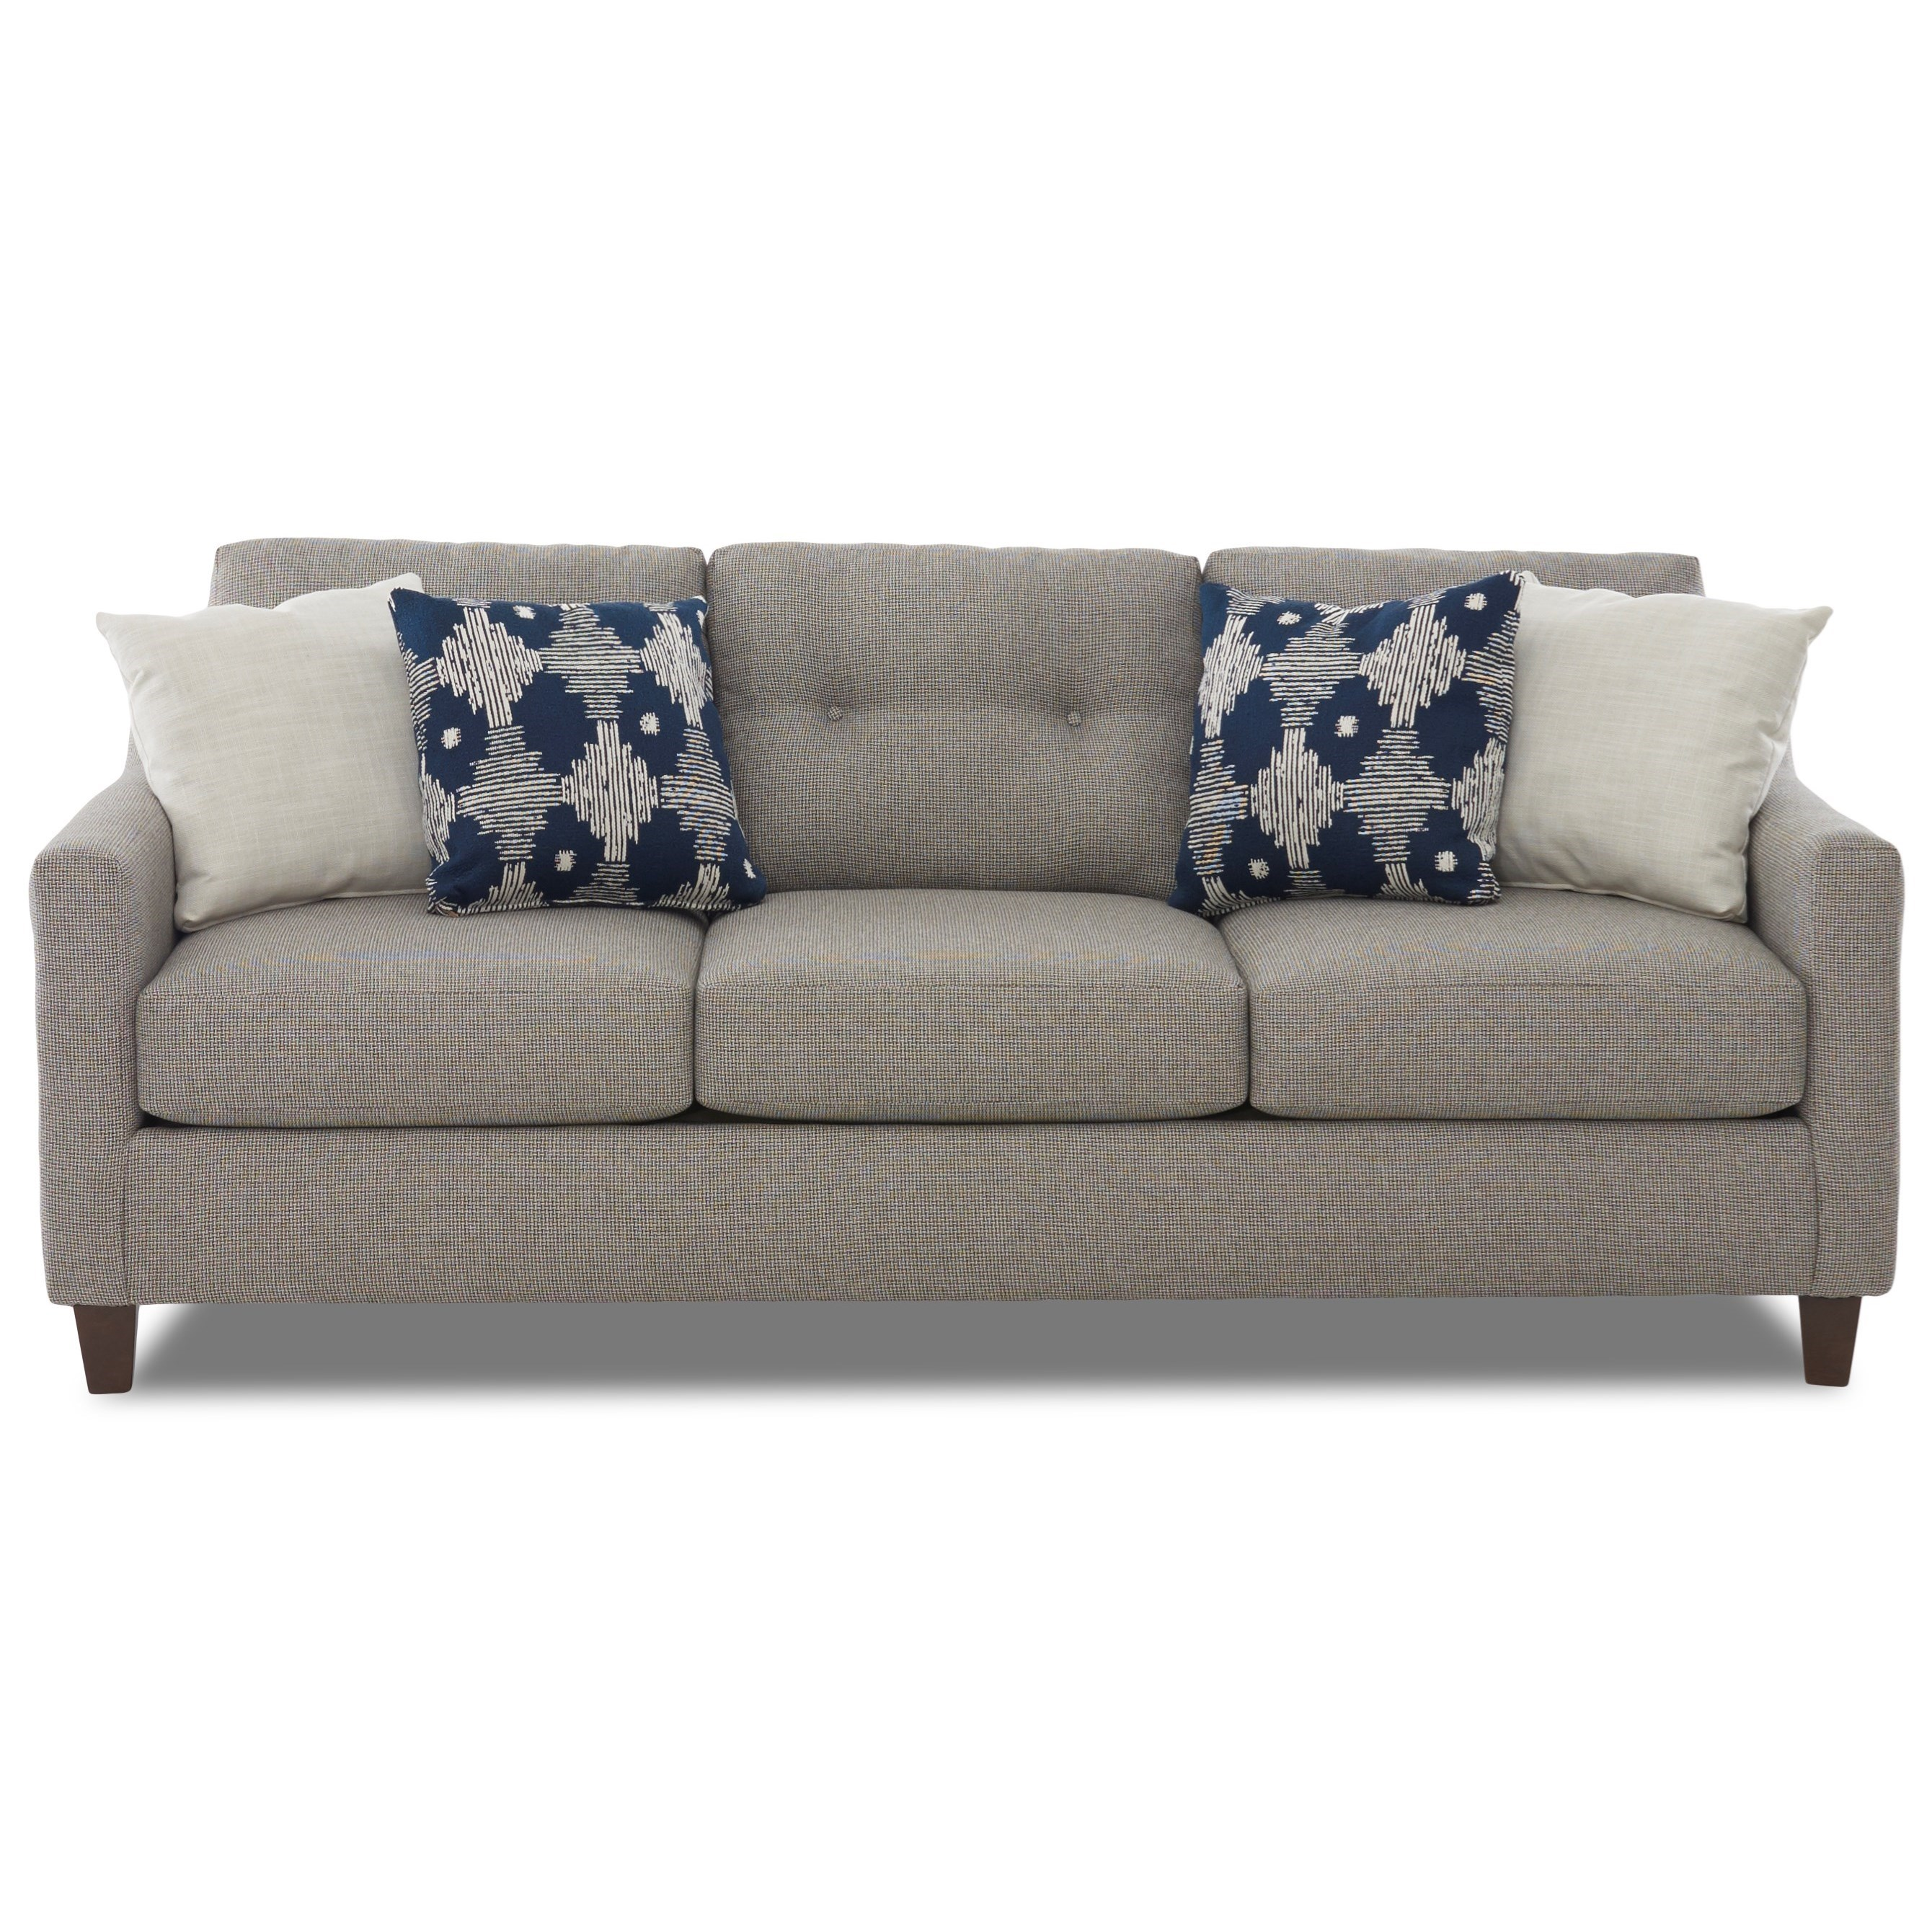 Klaussner Reggie Contemporary Sofa With Loose Tufted Back Cushions